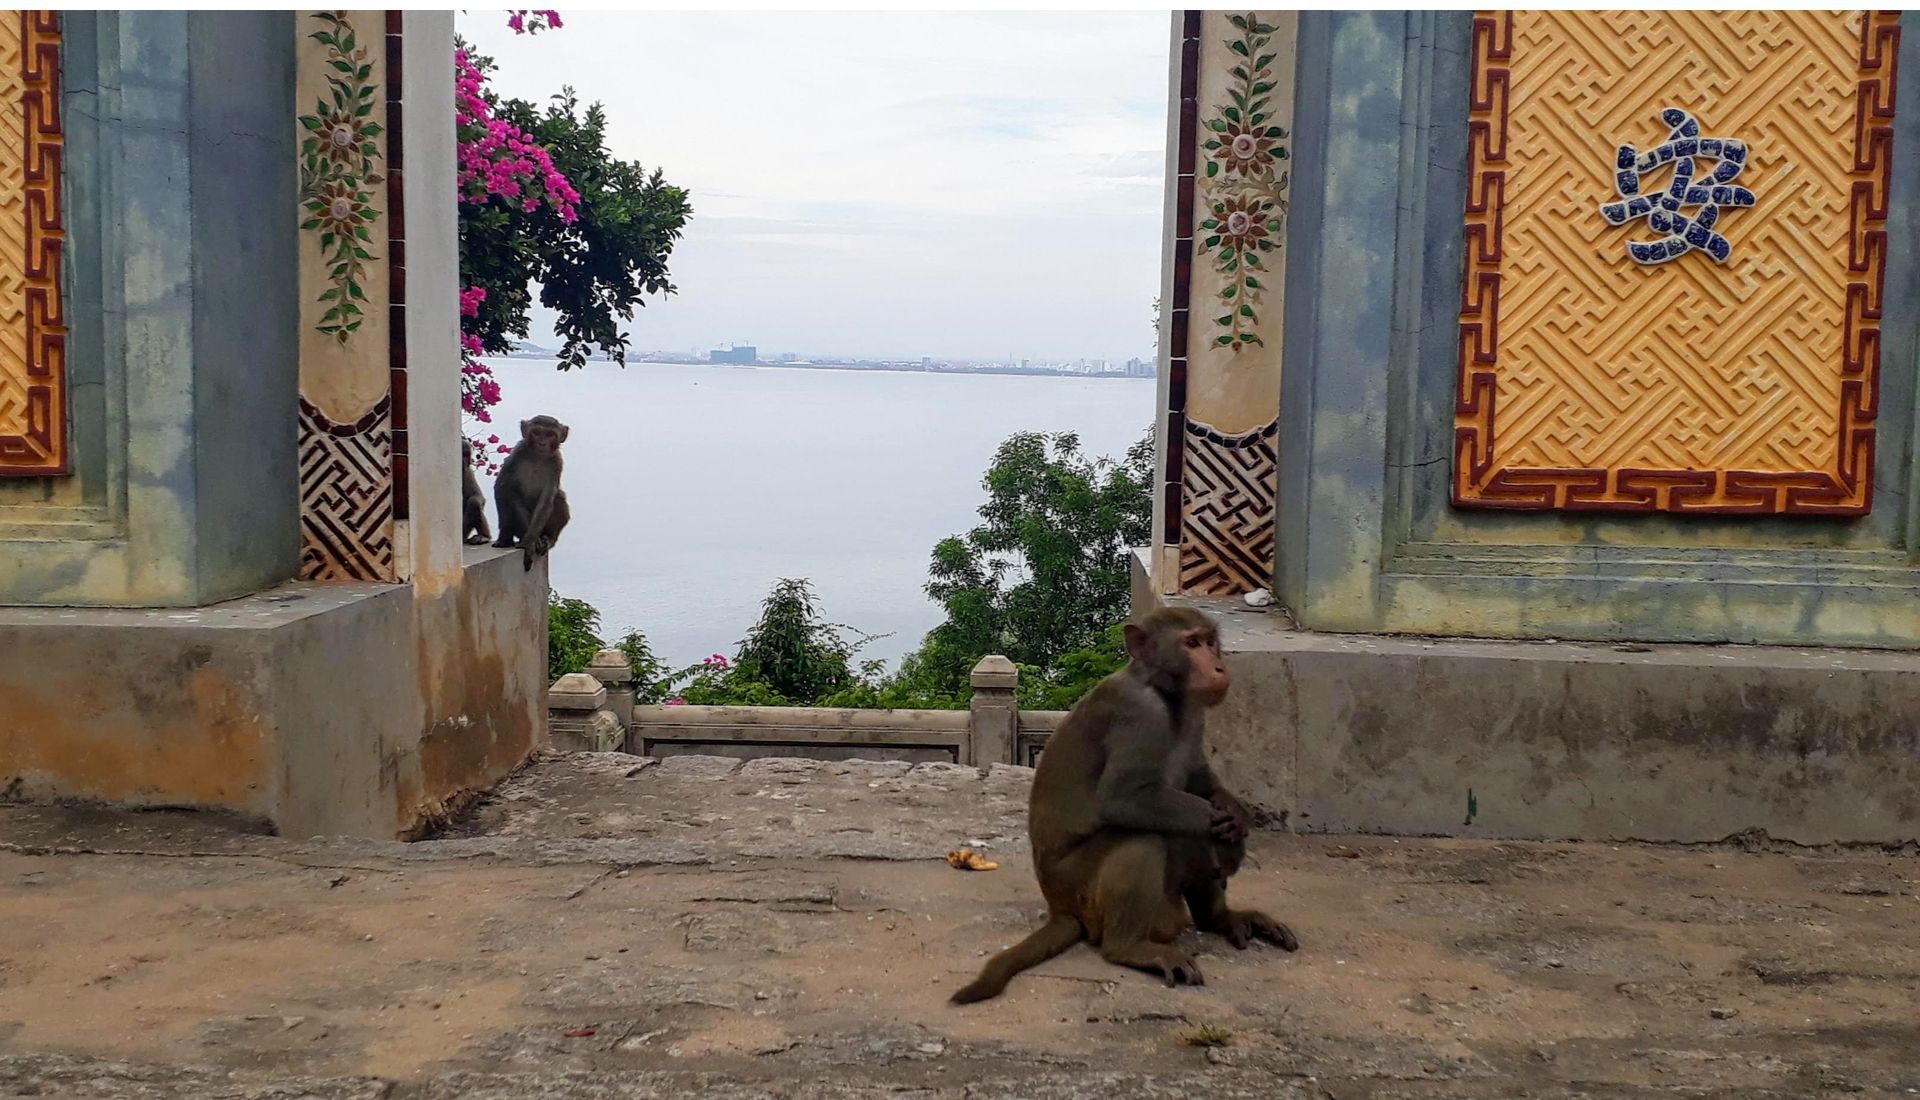 Monkeys eyeing off humans